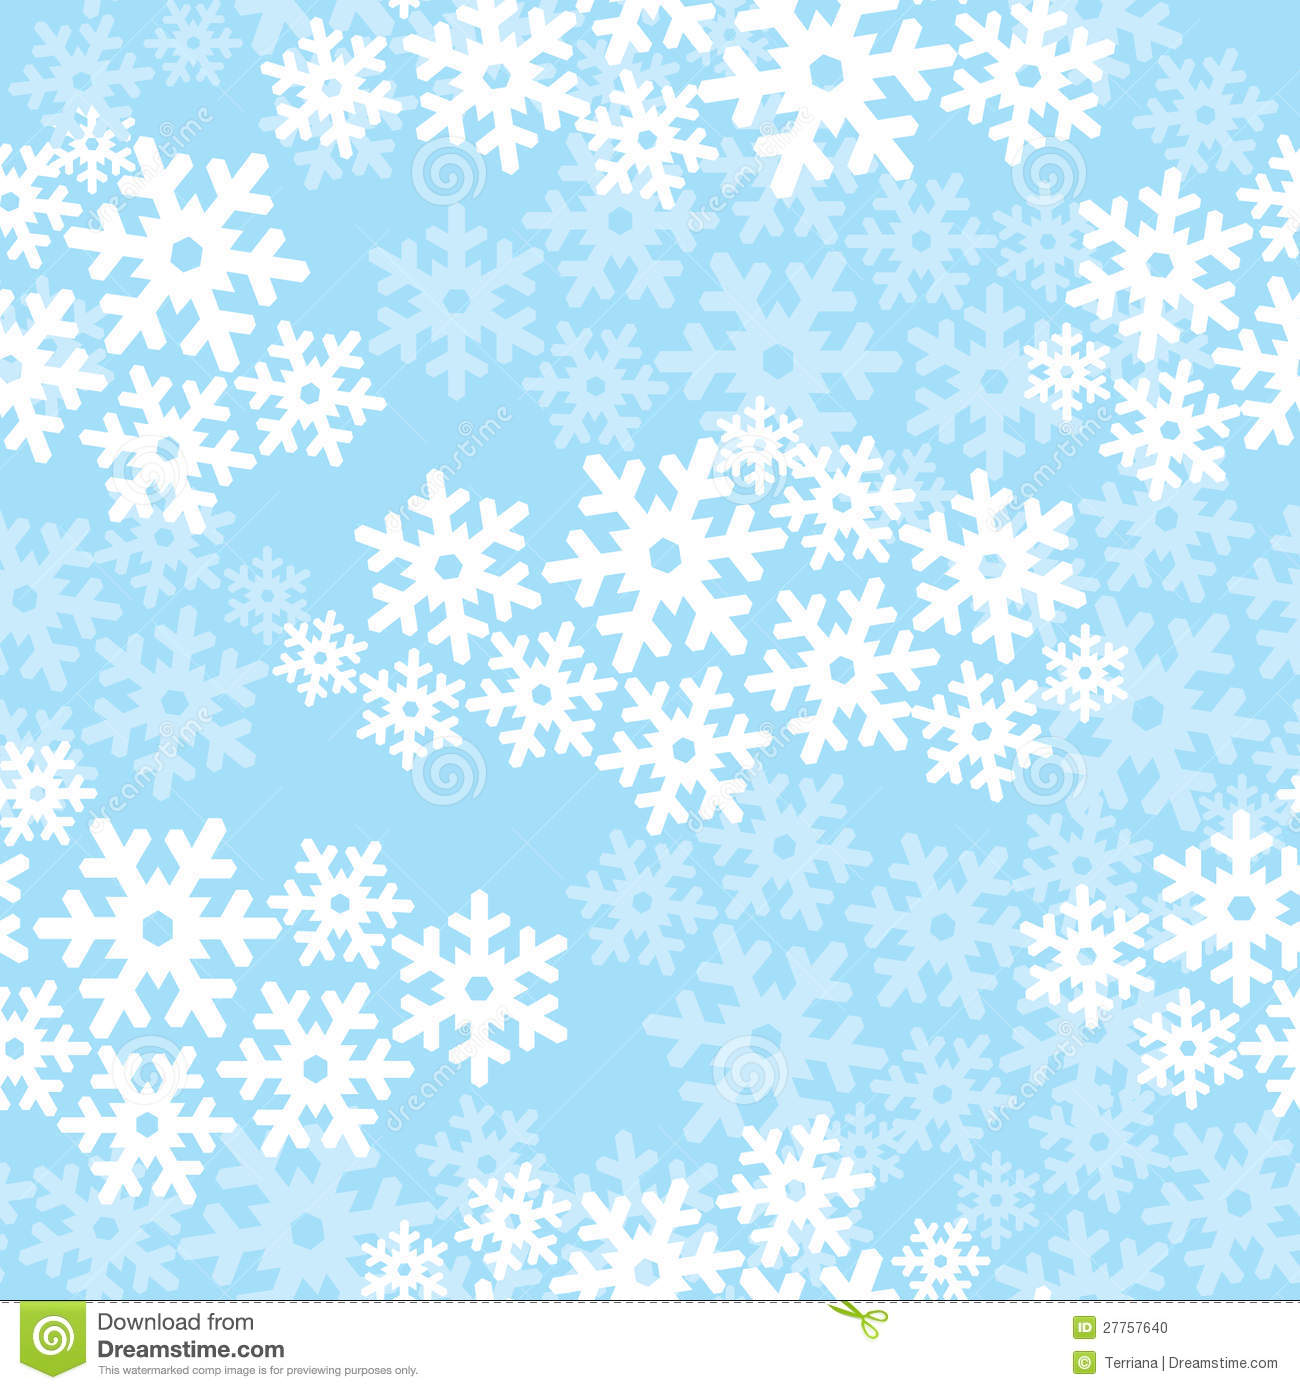 Animated Snow Falling Wallpaper Free Download Snowflakes Seamless Christmas Pattern Stock Vector